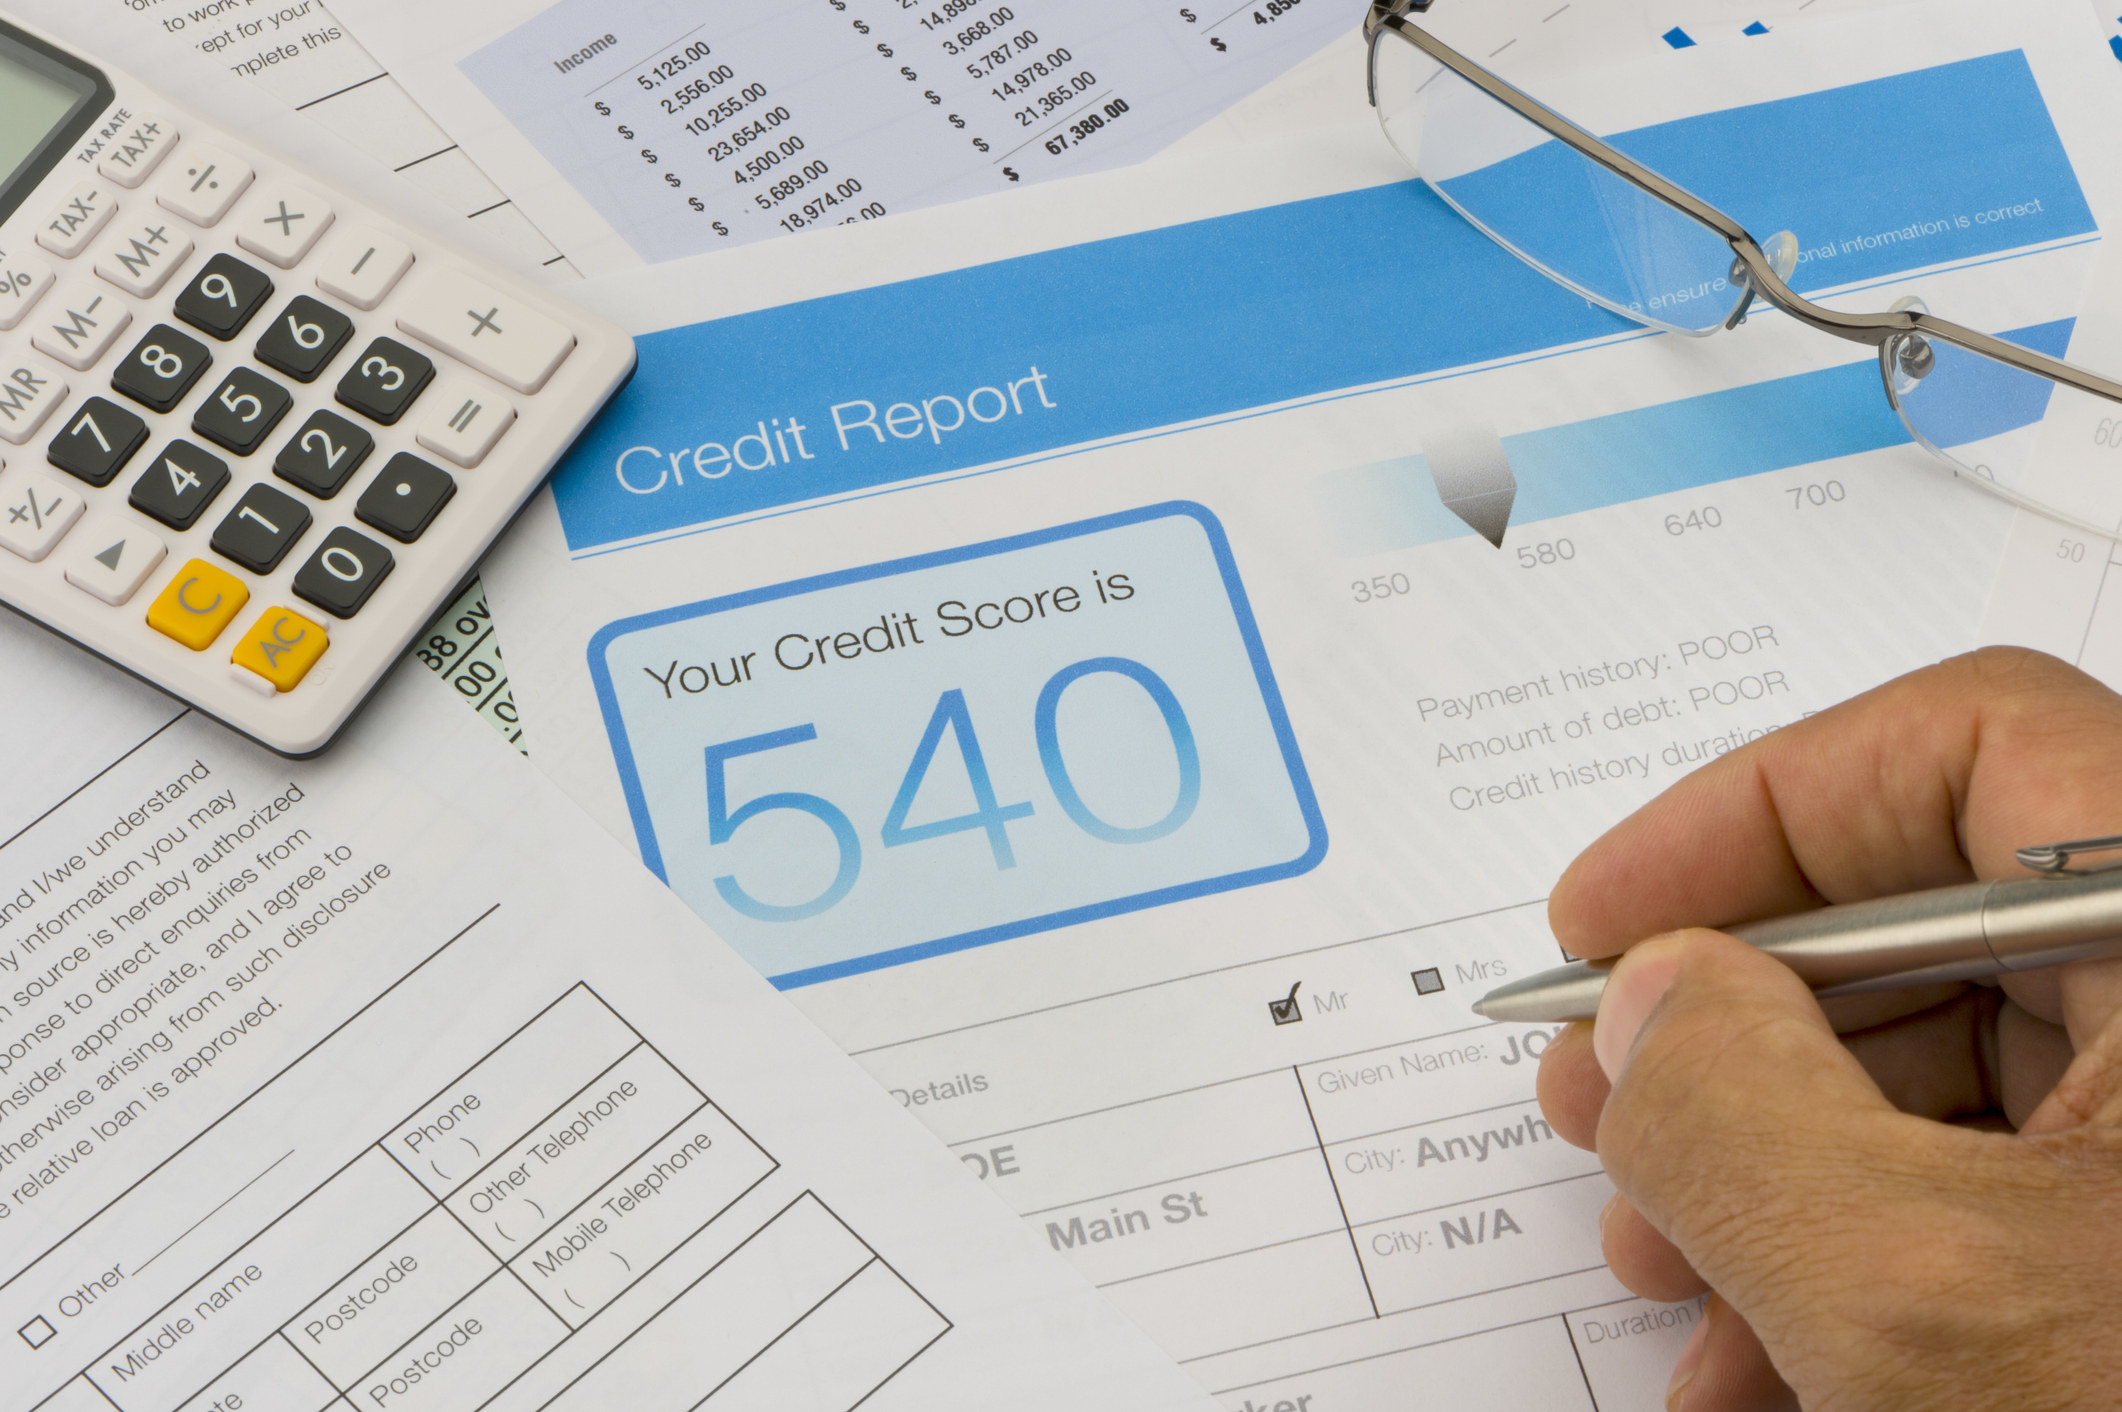 Credit report showing a 540 score